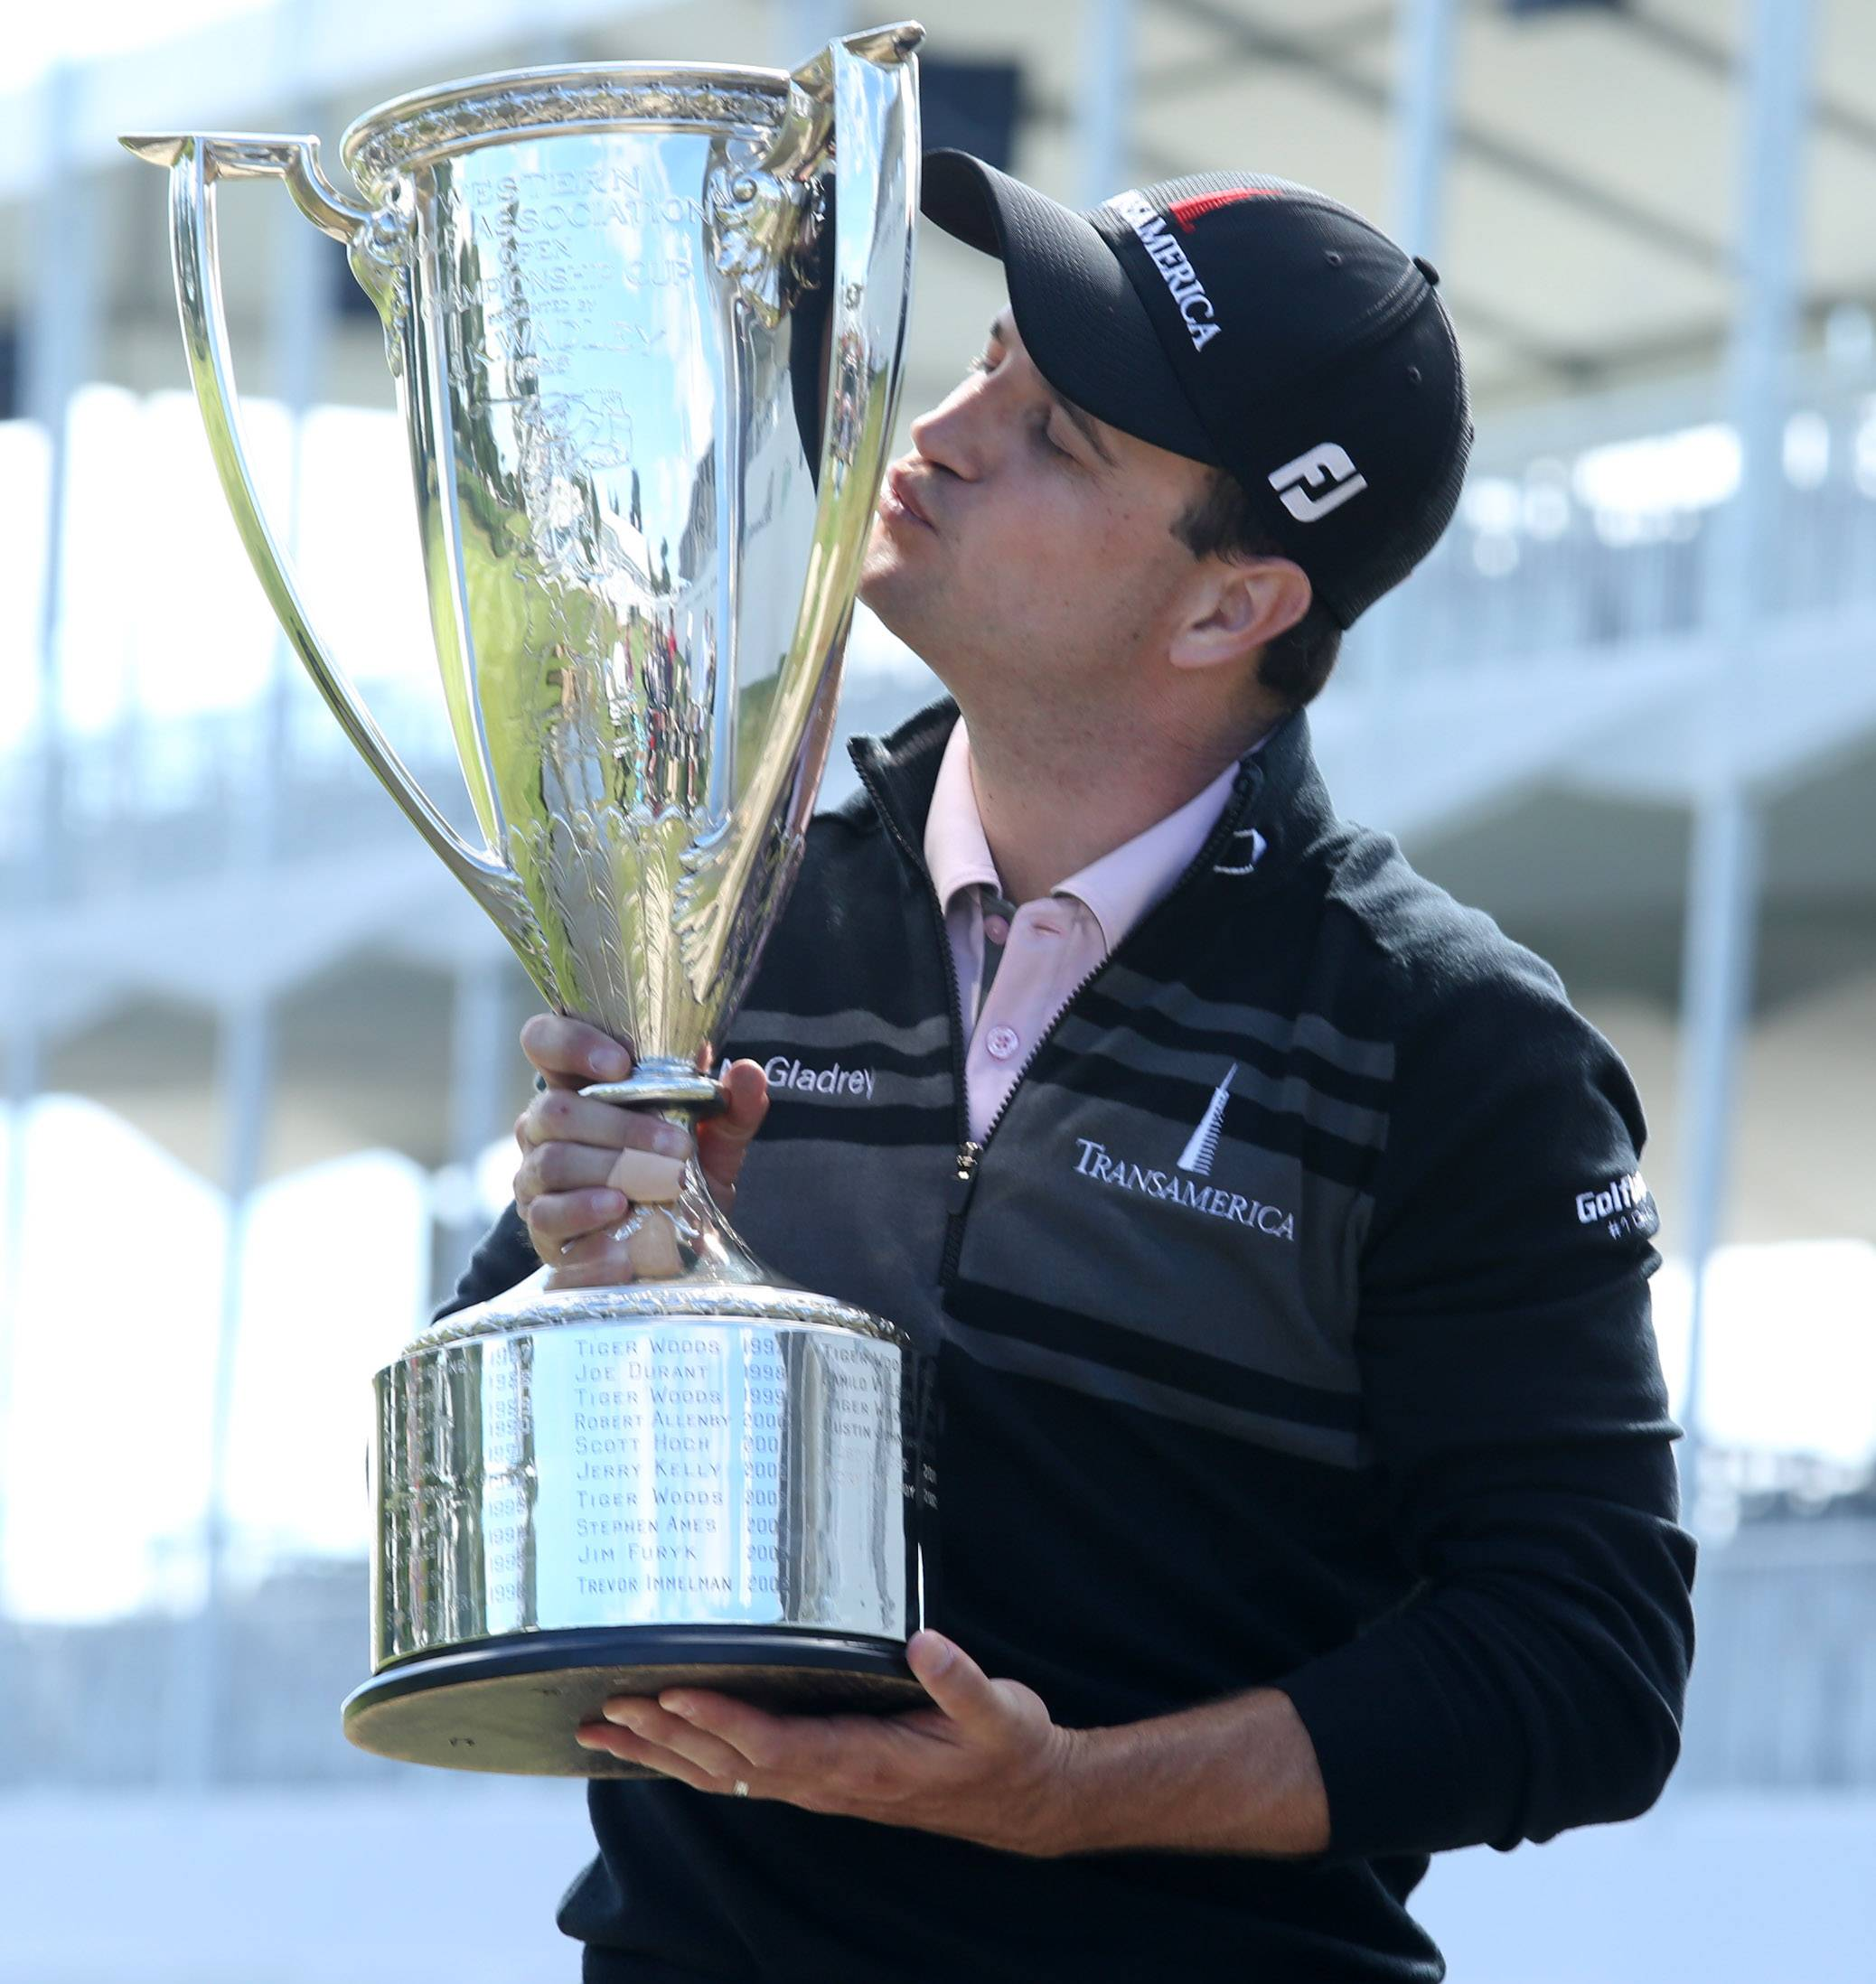 Zach Johnson, who earned the J.K. Wadley Trophy after winning the 2013 BMW Championship at Conway Farms Golf Club in Lake Forest in 2013, will have a chance to defend his title when the event returns in 2015.